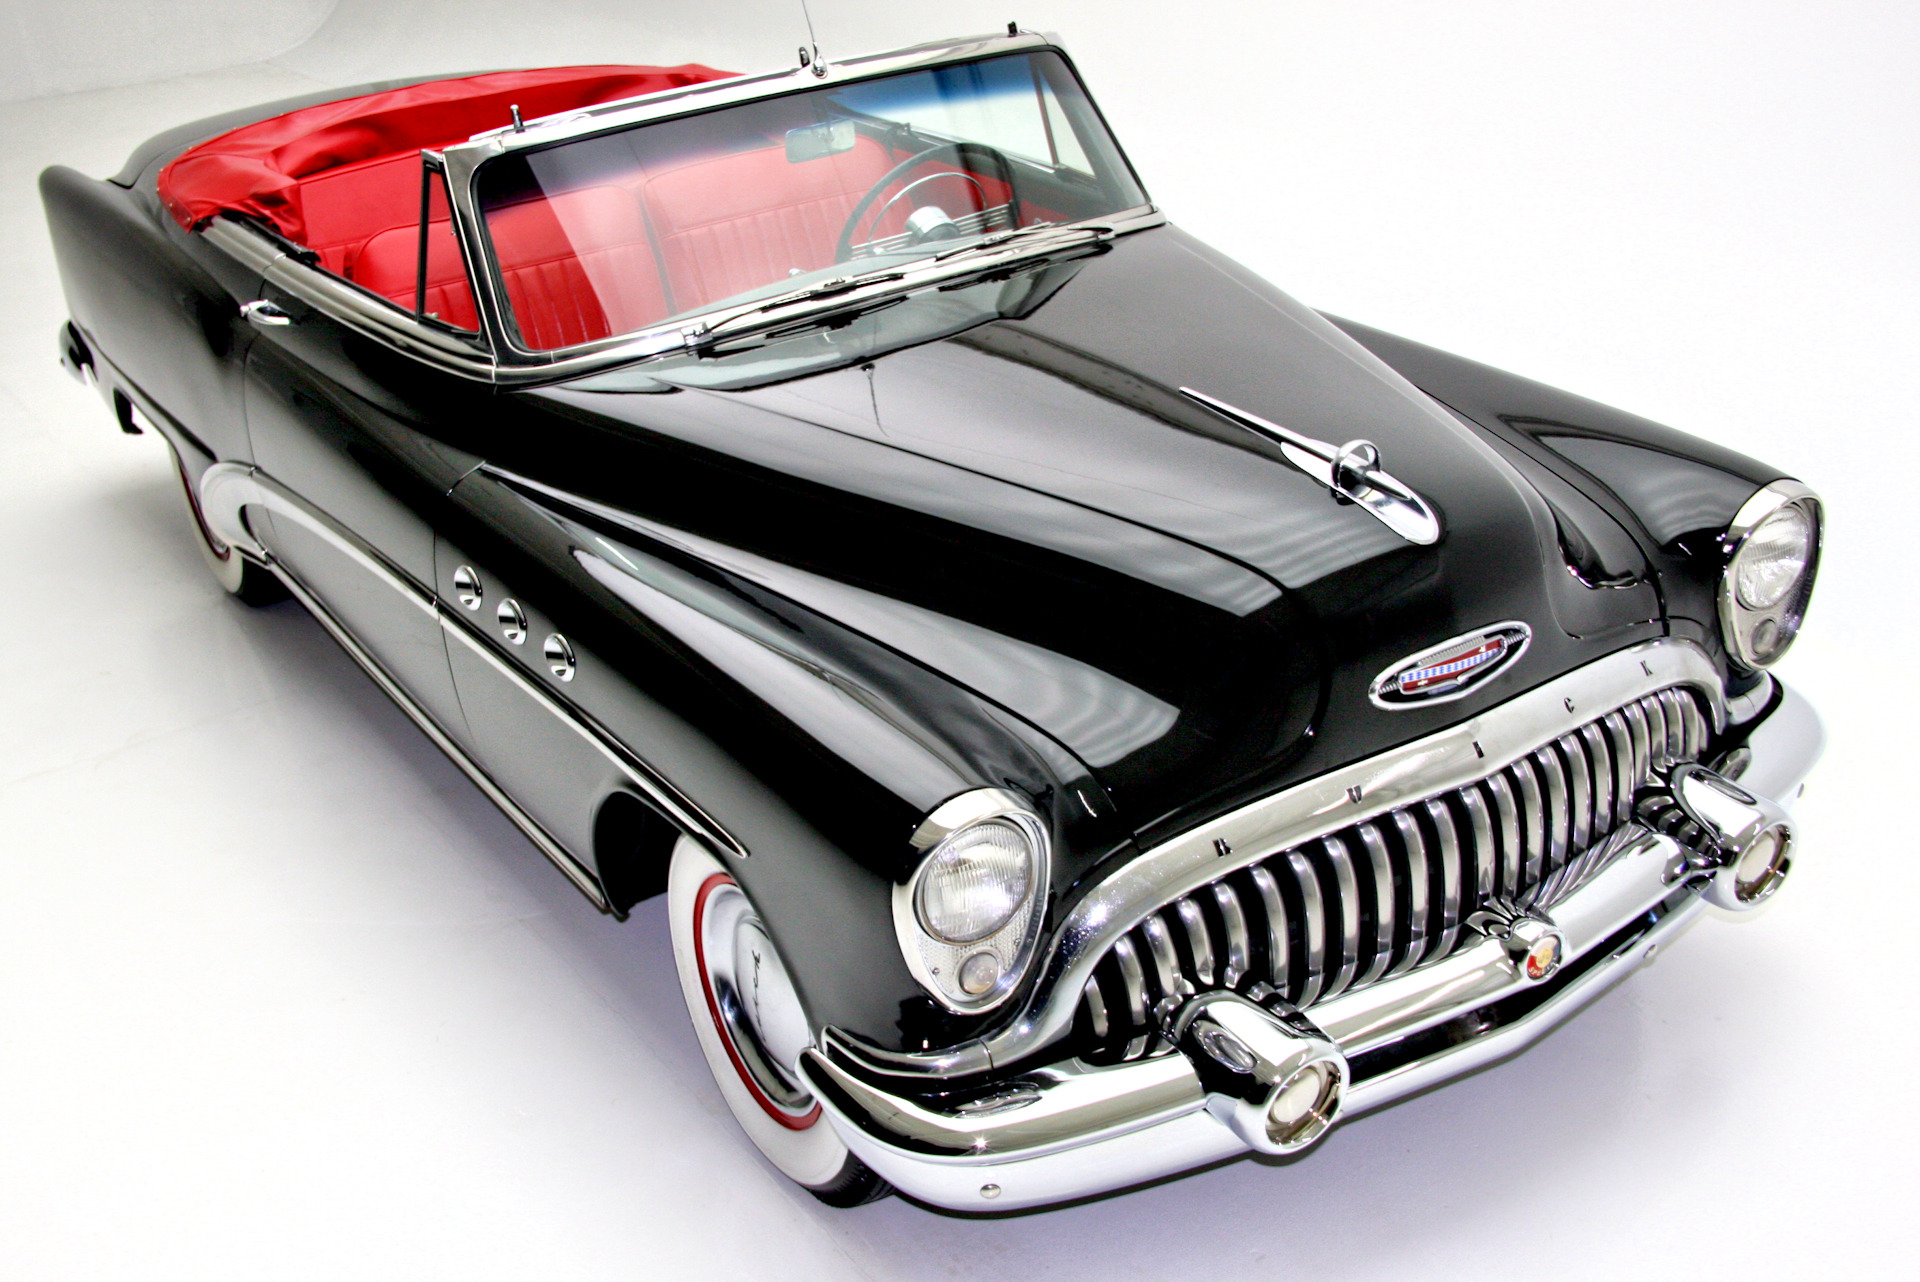 For Sale Used 1953 Buick Special Convertible Rare Black & Red | American Dream Machines Des Moines IA 50309